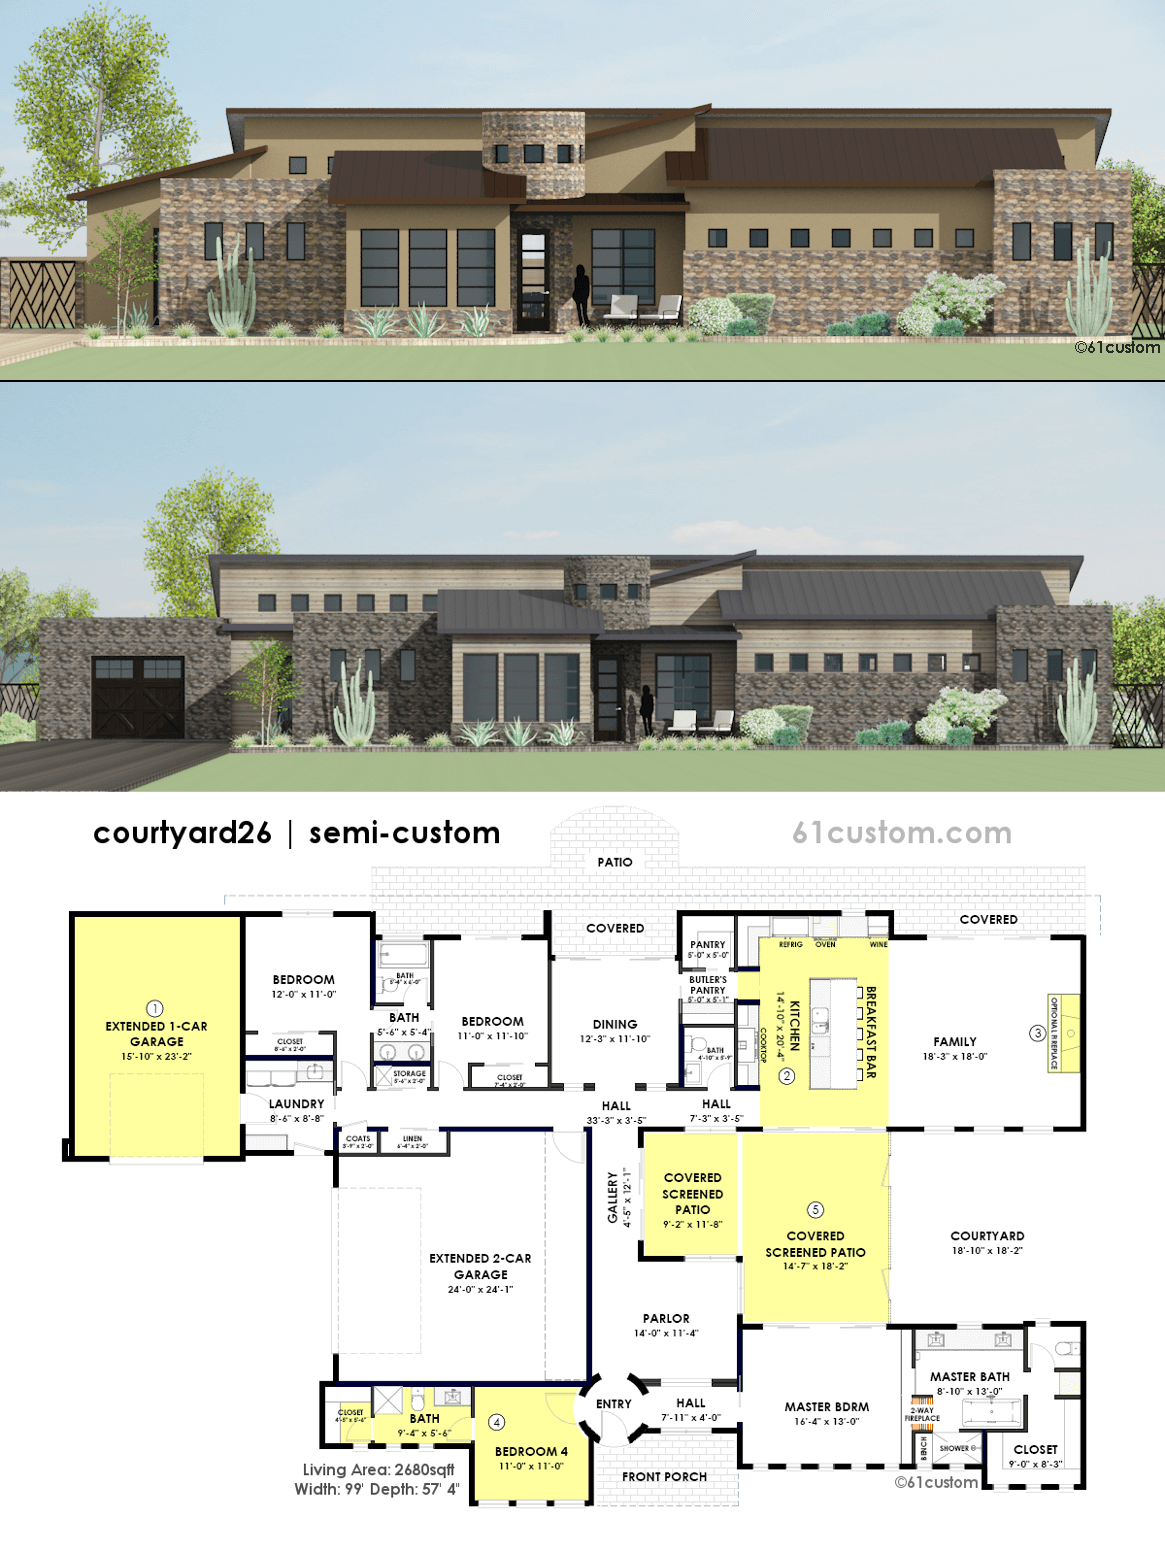 Contemporary side courtyard house plan 61custom Modern house plans free